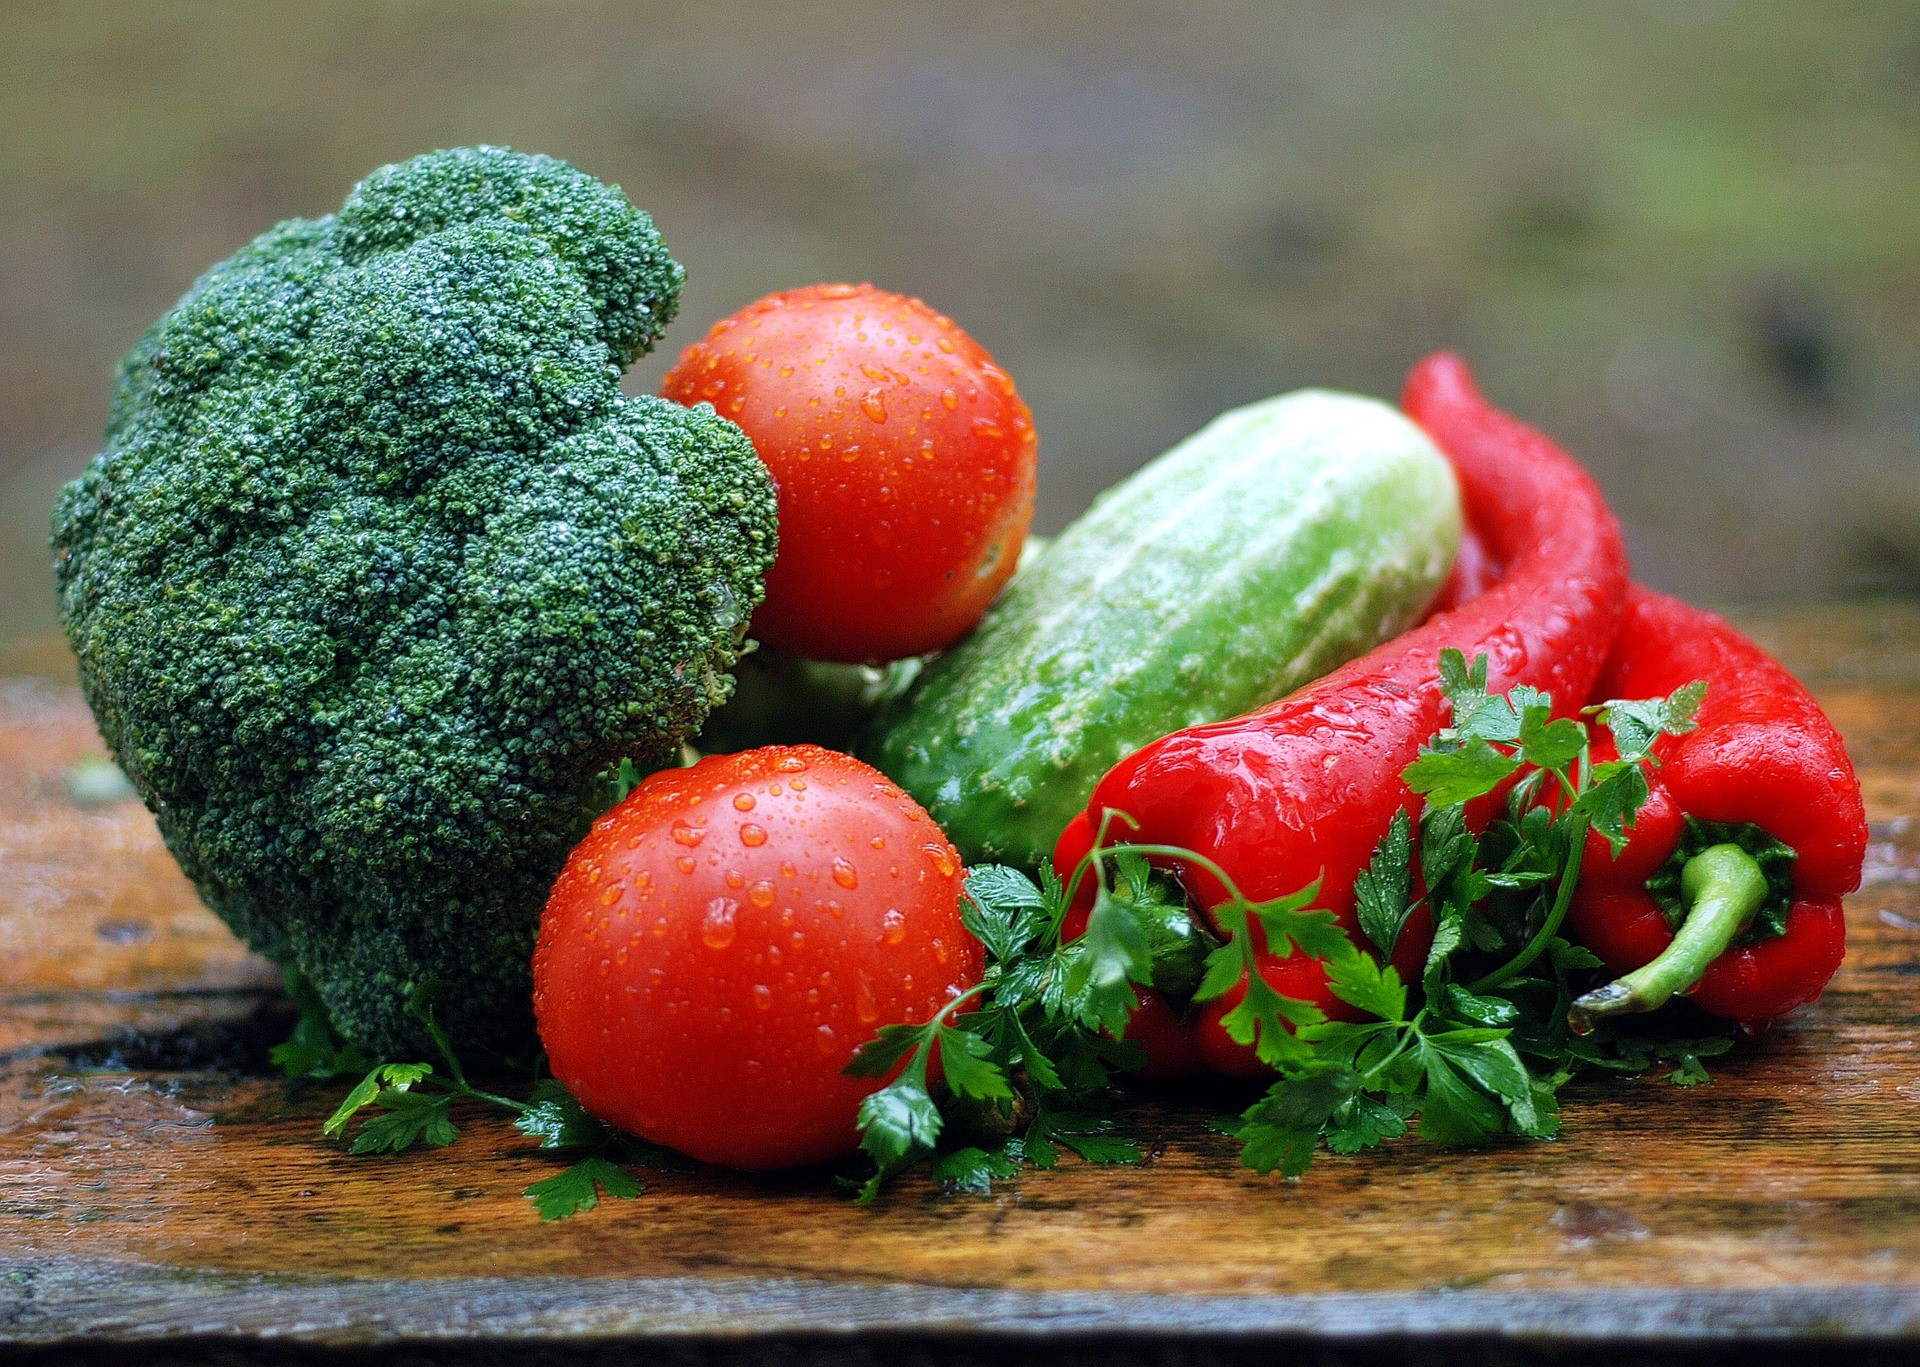 vegetables are sources of carbohydrates